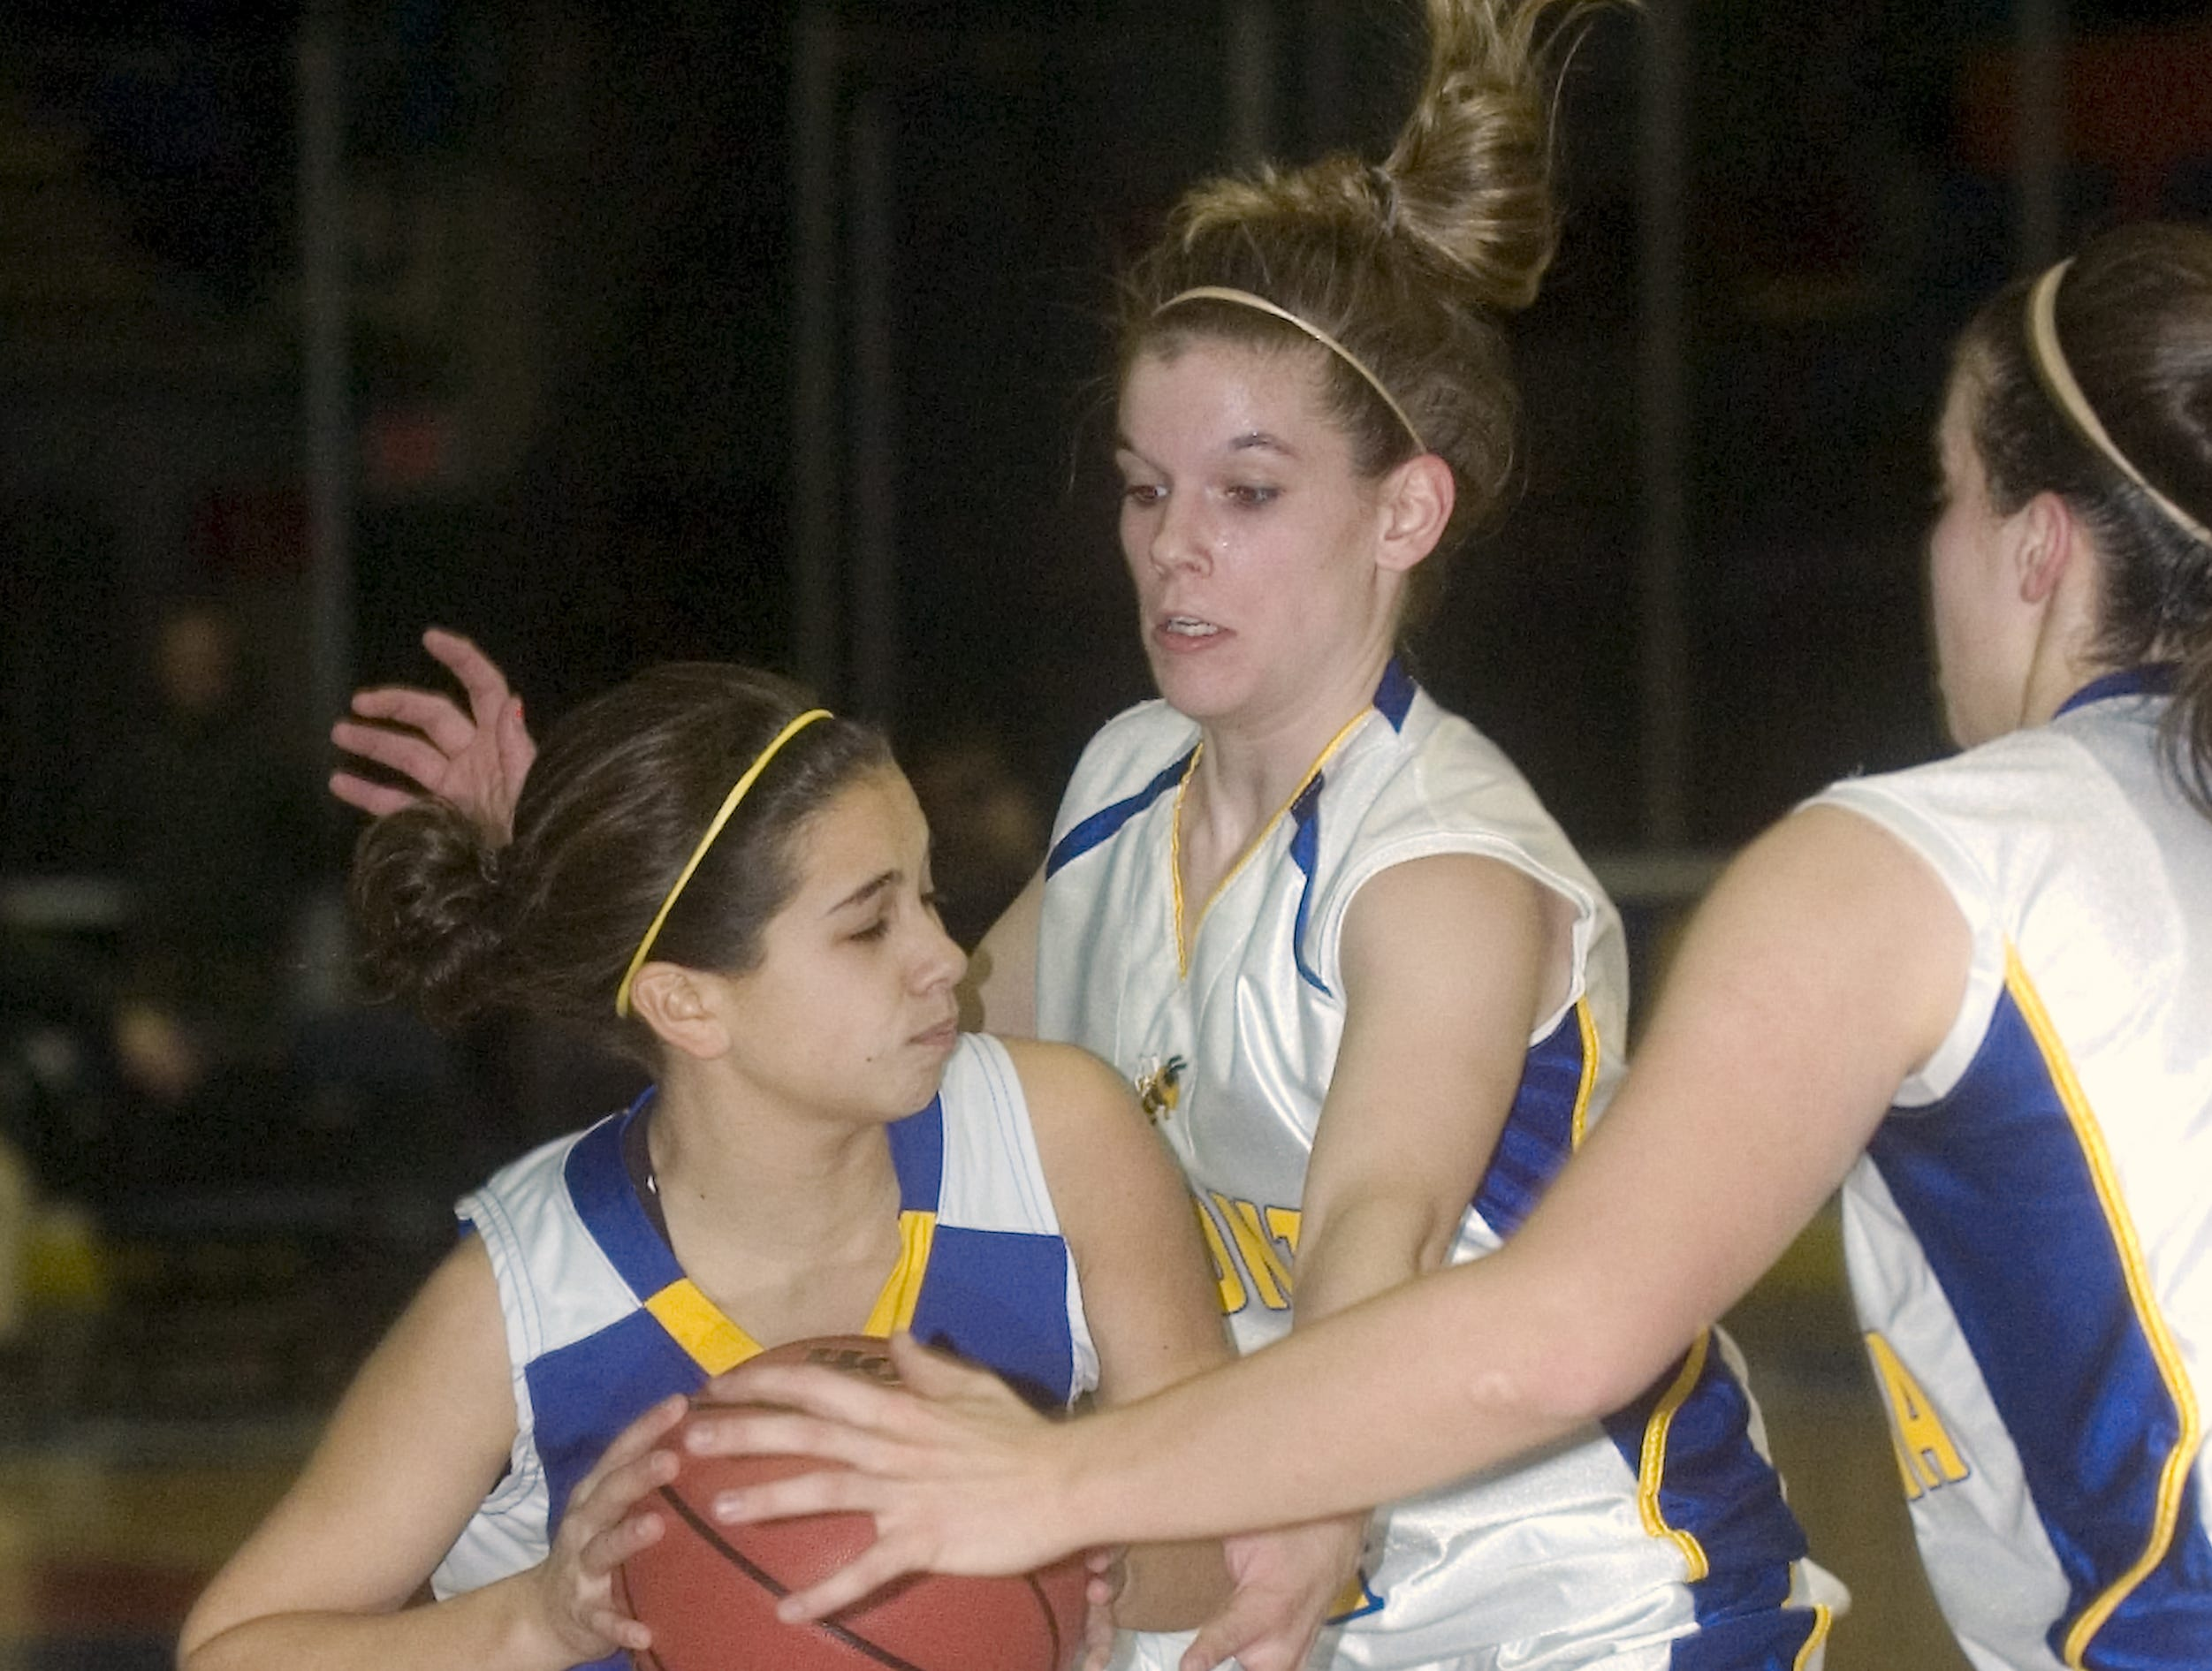 2009: Lansing's Nina Lindberg, left, is double-teamed by Oneonta's Sienna Wisse, right, and Jenn Dilello in the second quarter of Friday's Section 4 Class B girls basketball finals at Broome County Veterans Memorial Arena.